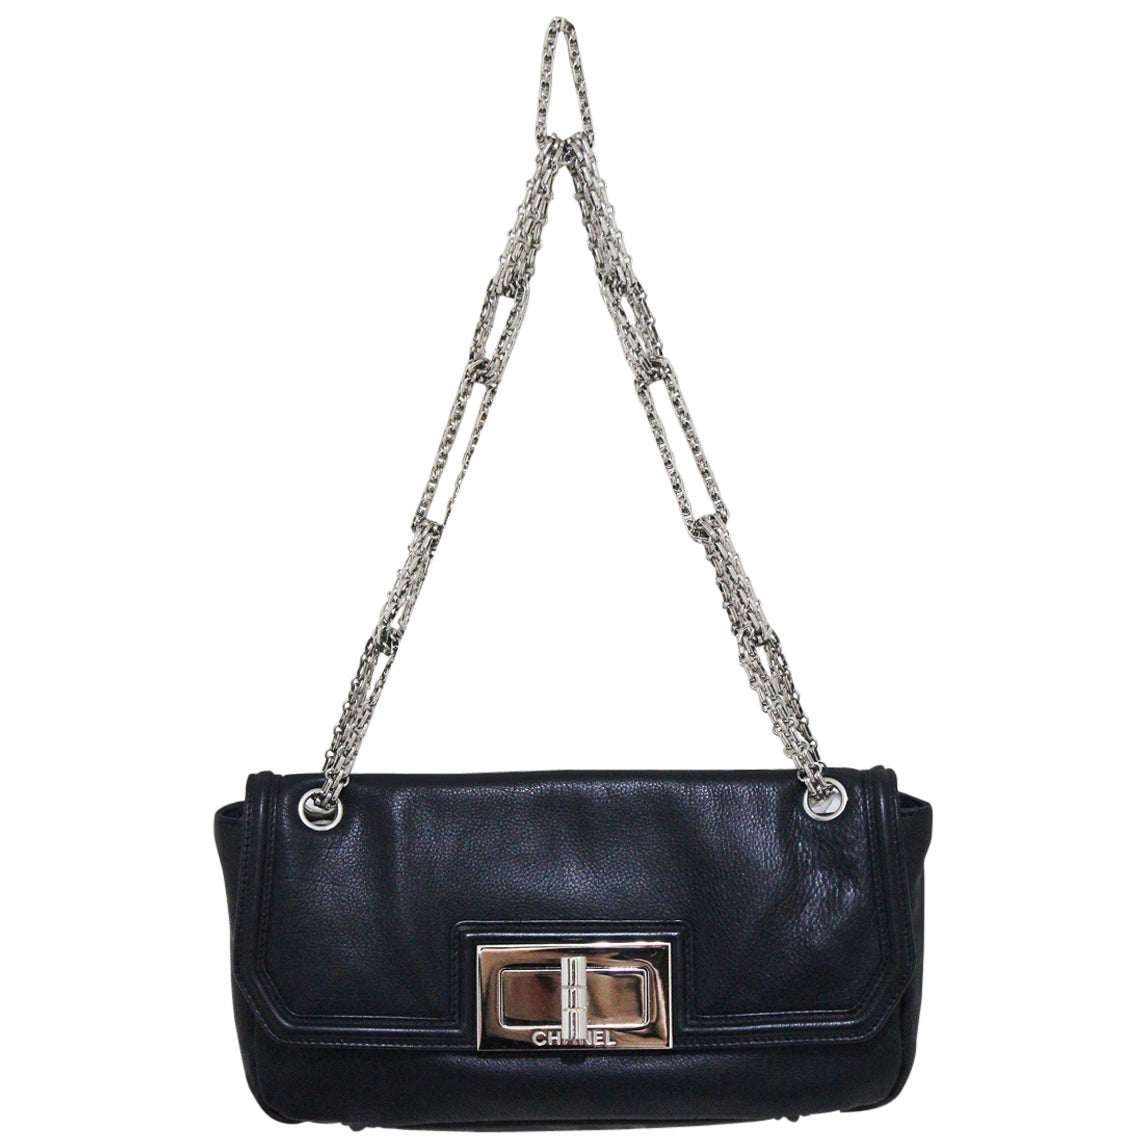 f2c170a6843b66 Chanel black 'Sac Baguette' bag with oversized lock, c. 2008-9 For Sale at  1stdibs